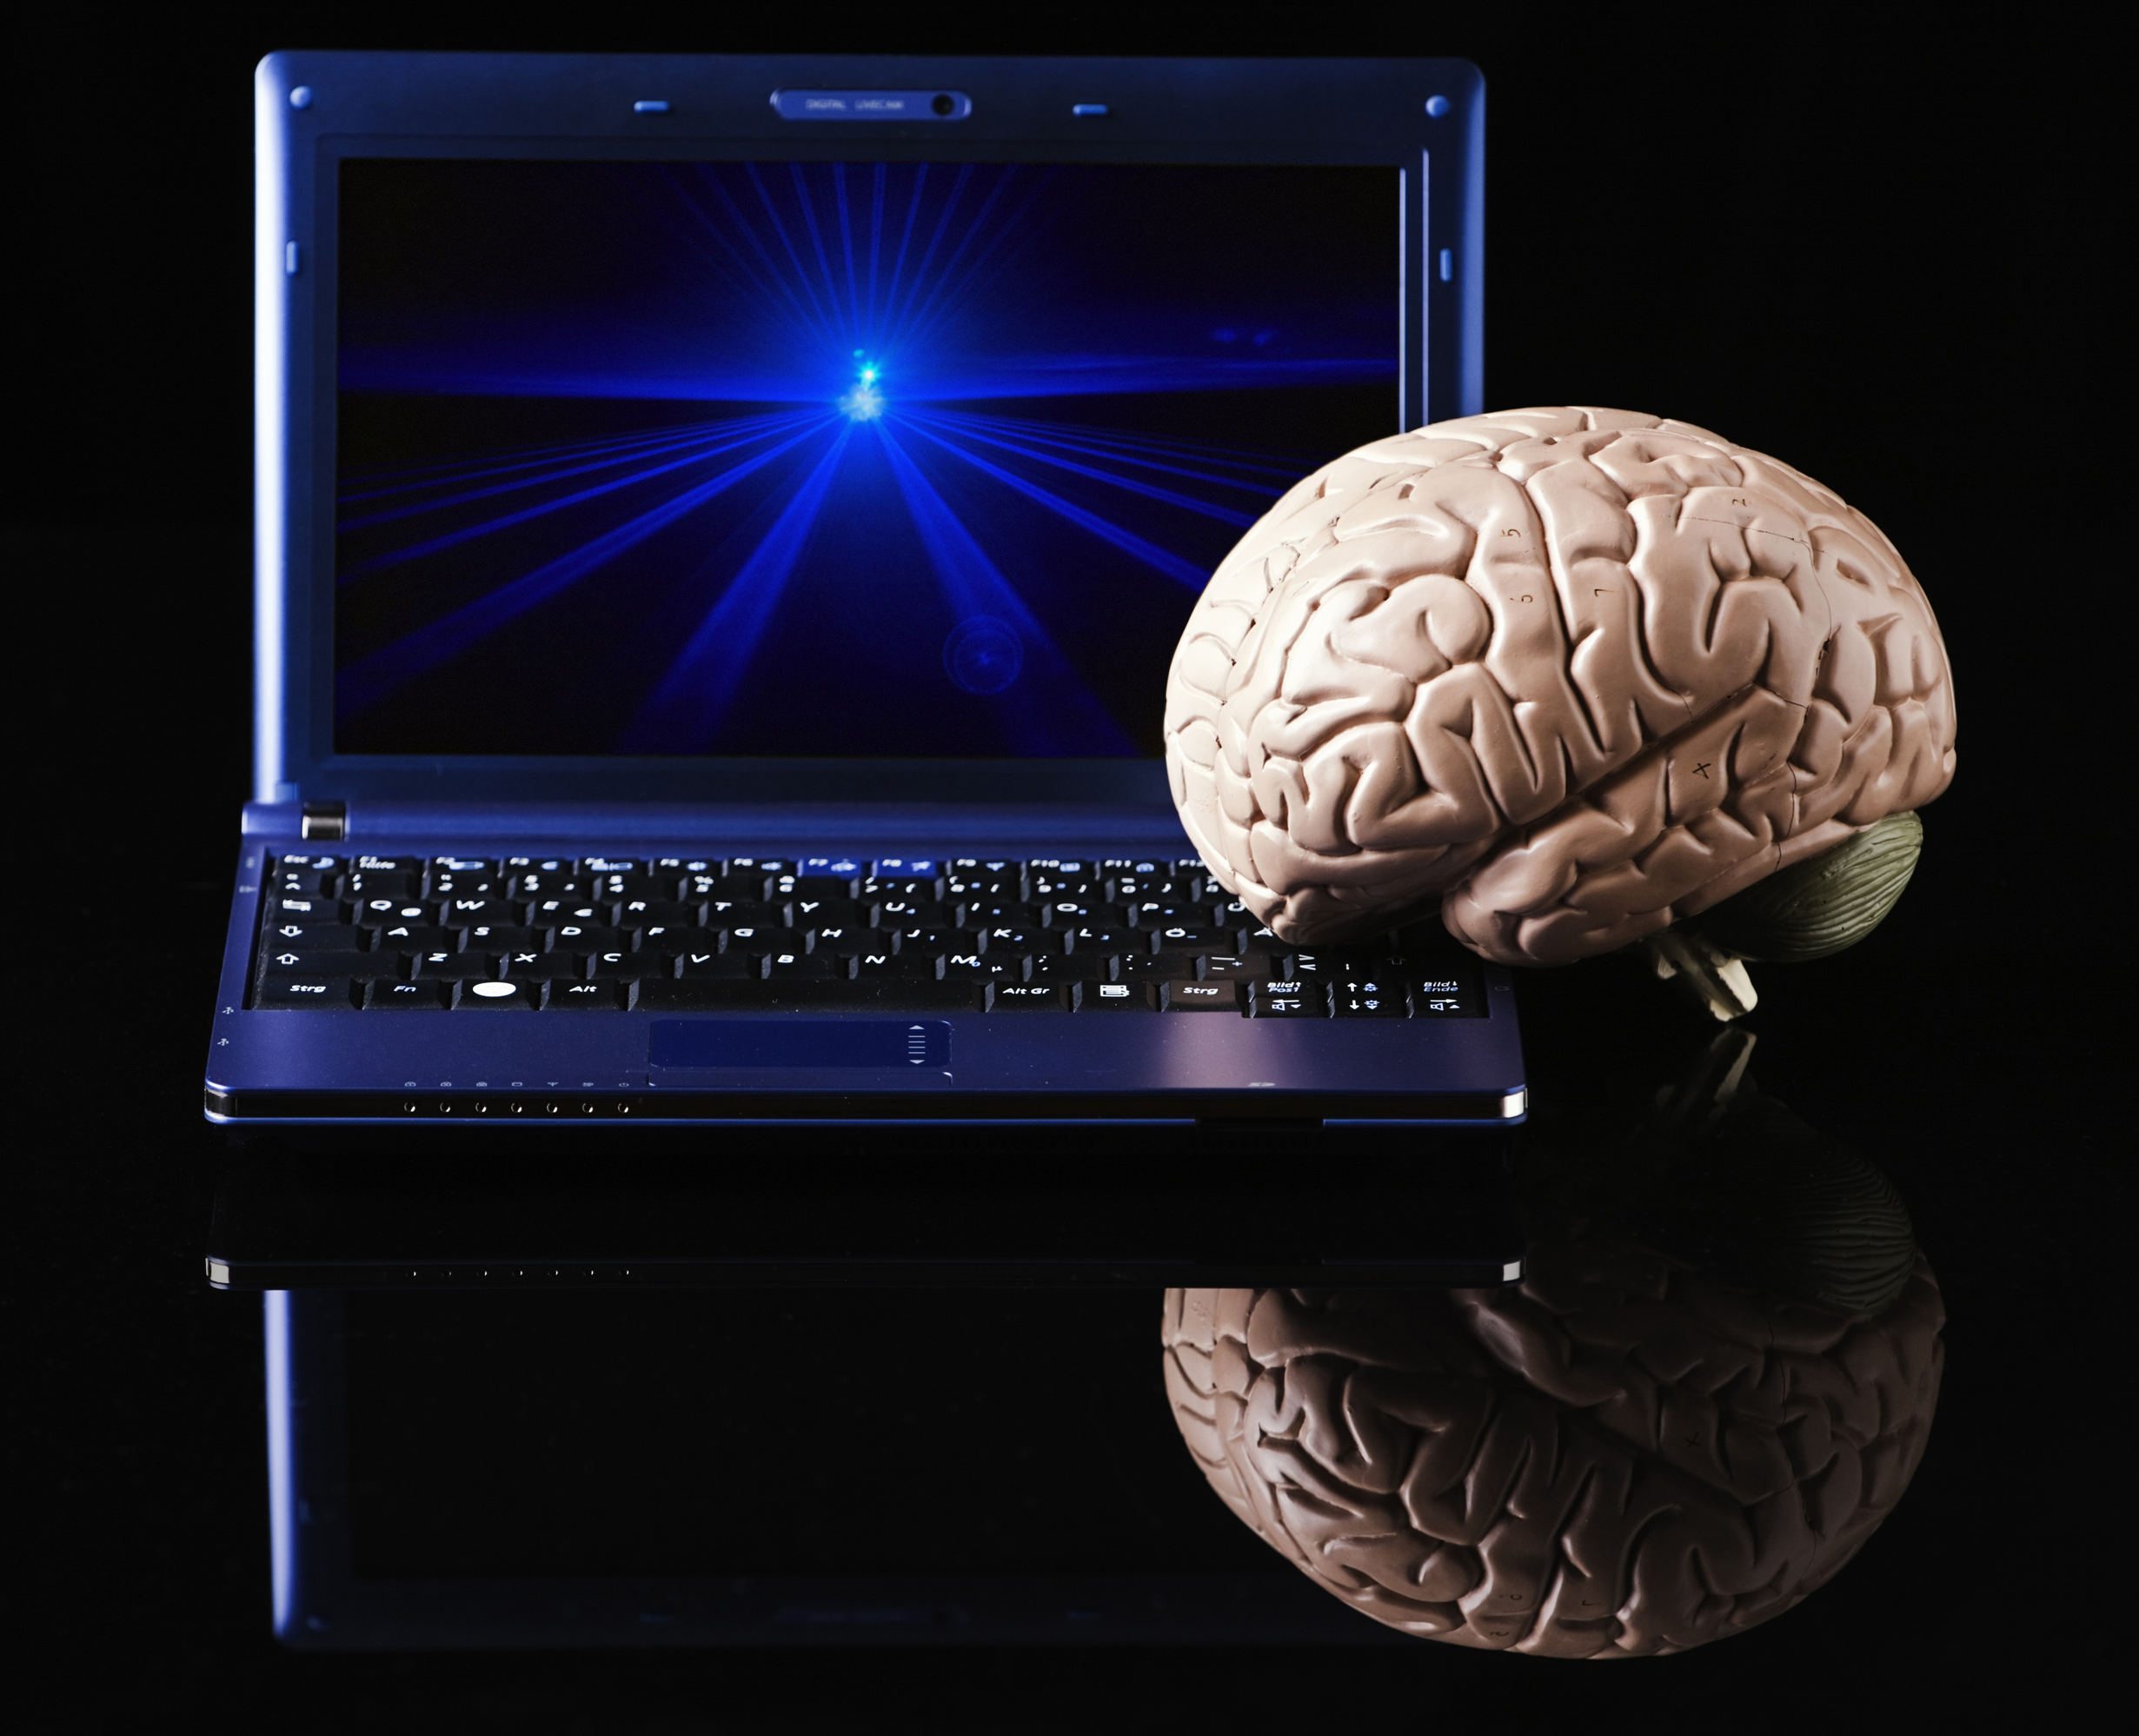 Brain brings computer to life. A Frankenstein moment.